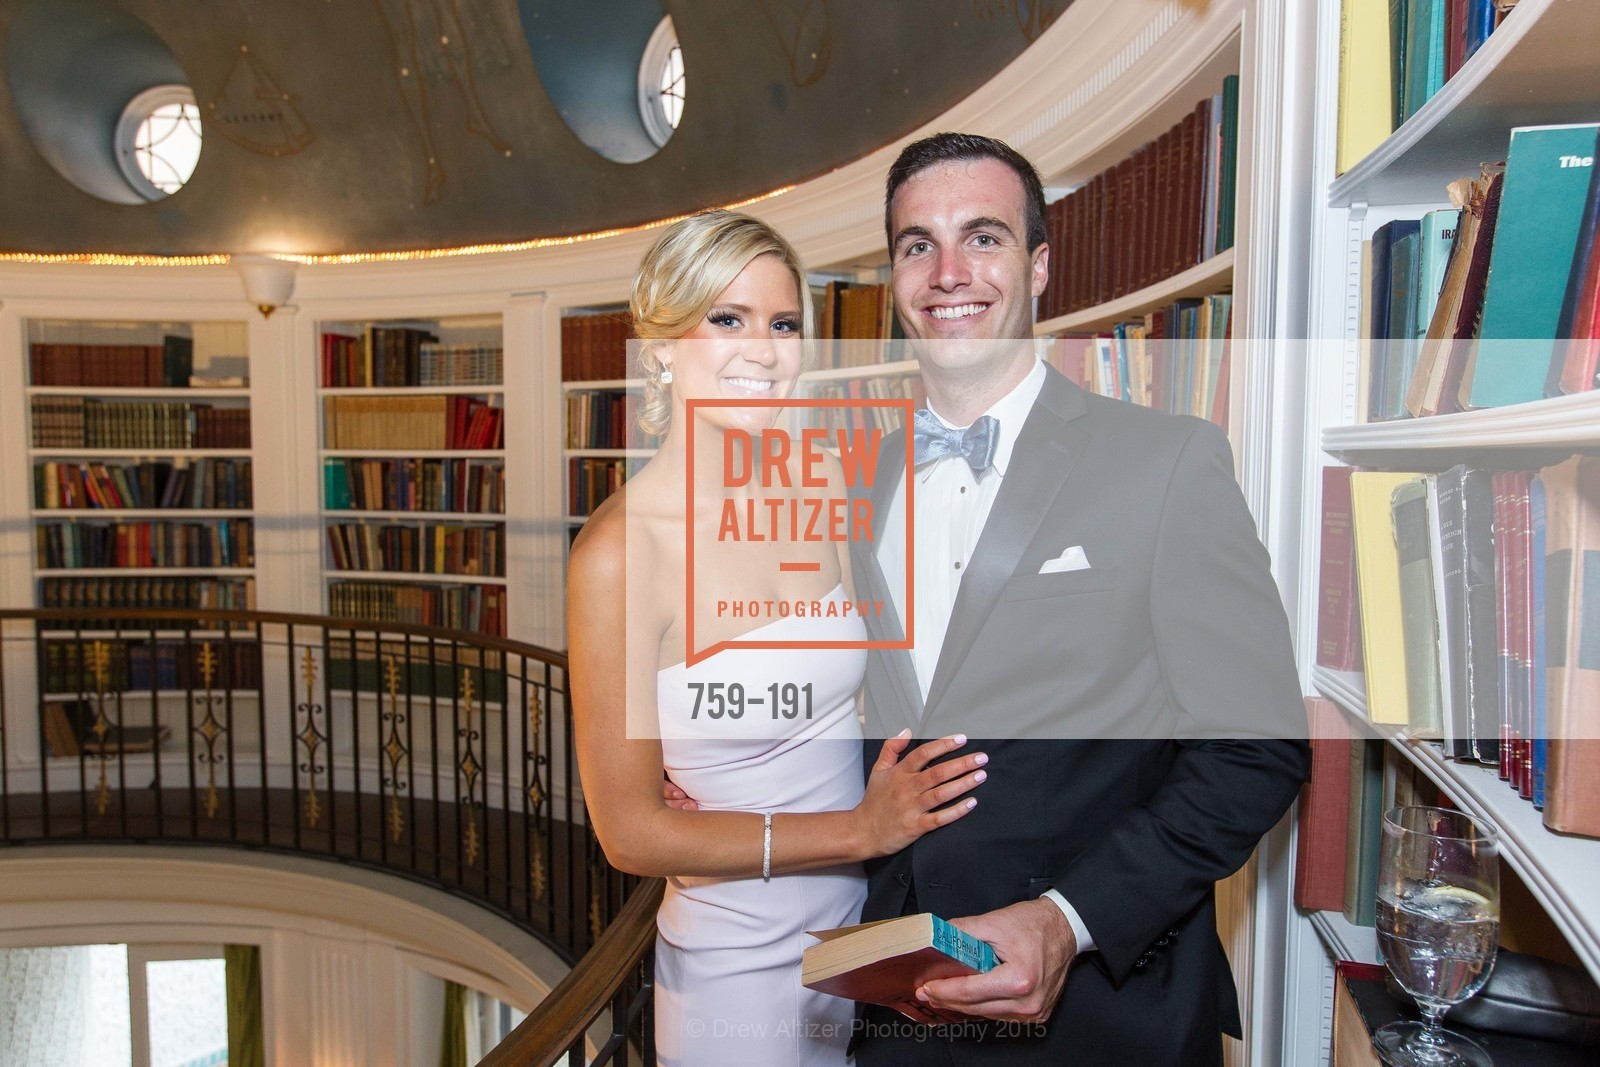 Abigail Davis, Connor Douglas, Spinsters of San Francisco Annual Ball 2015, Penthouse at the Fairmont San Francisco (950 Mason Street). 950 Mason Street, June 28th, 2015,Drew Altizer, Drew Altizer Photography, full-service agency, private events, San Francisco photographer, photographer california